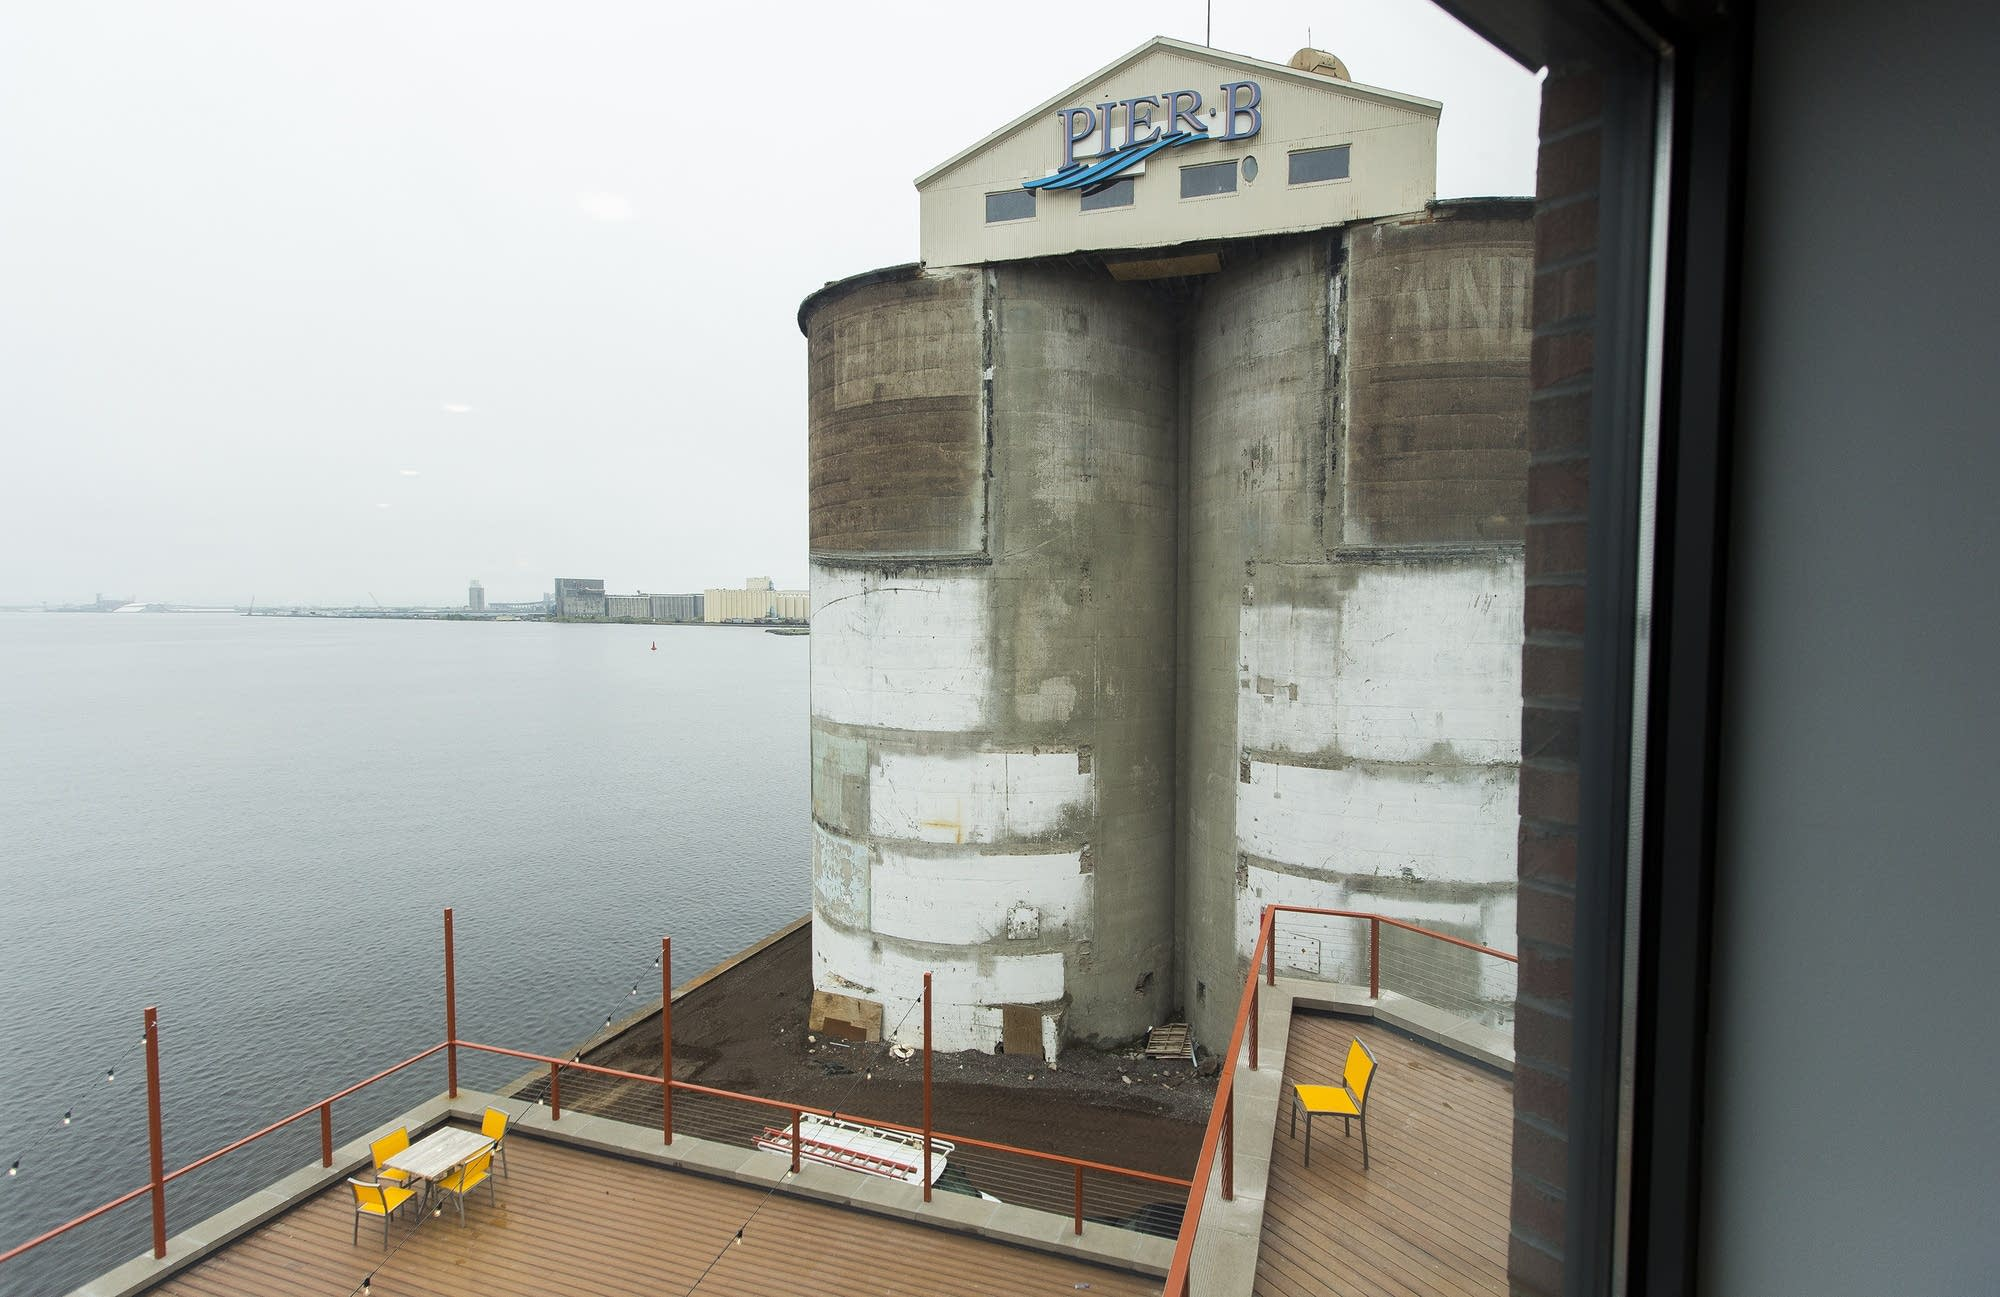 Pier B Resort's iconic concrete silos.